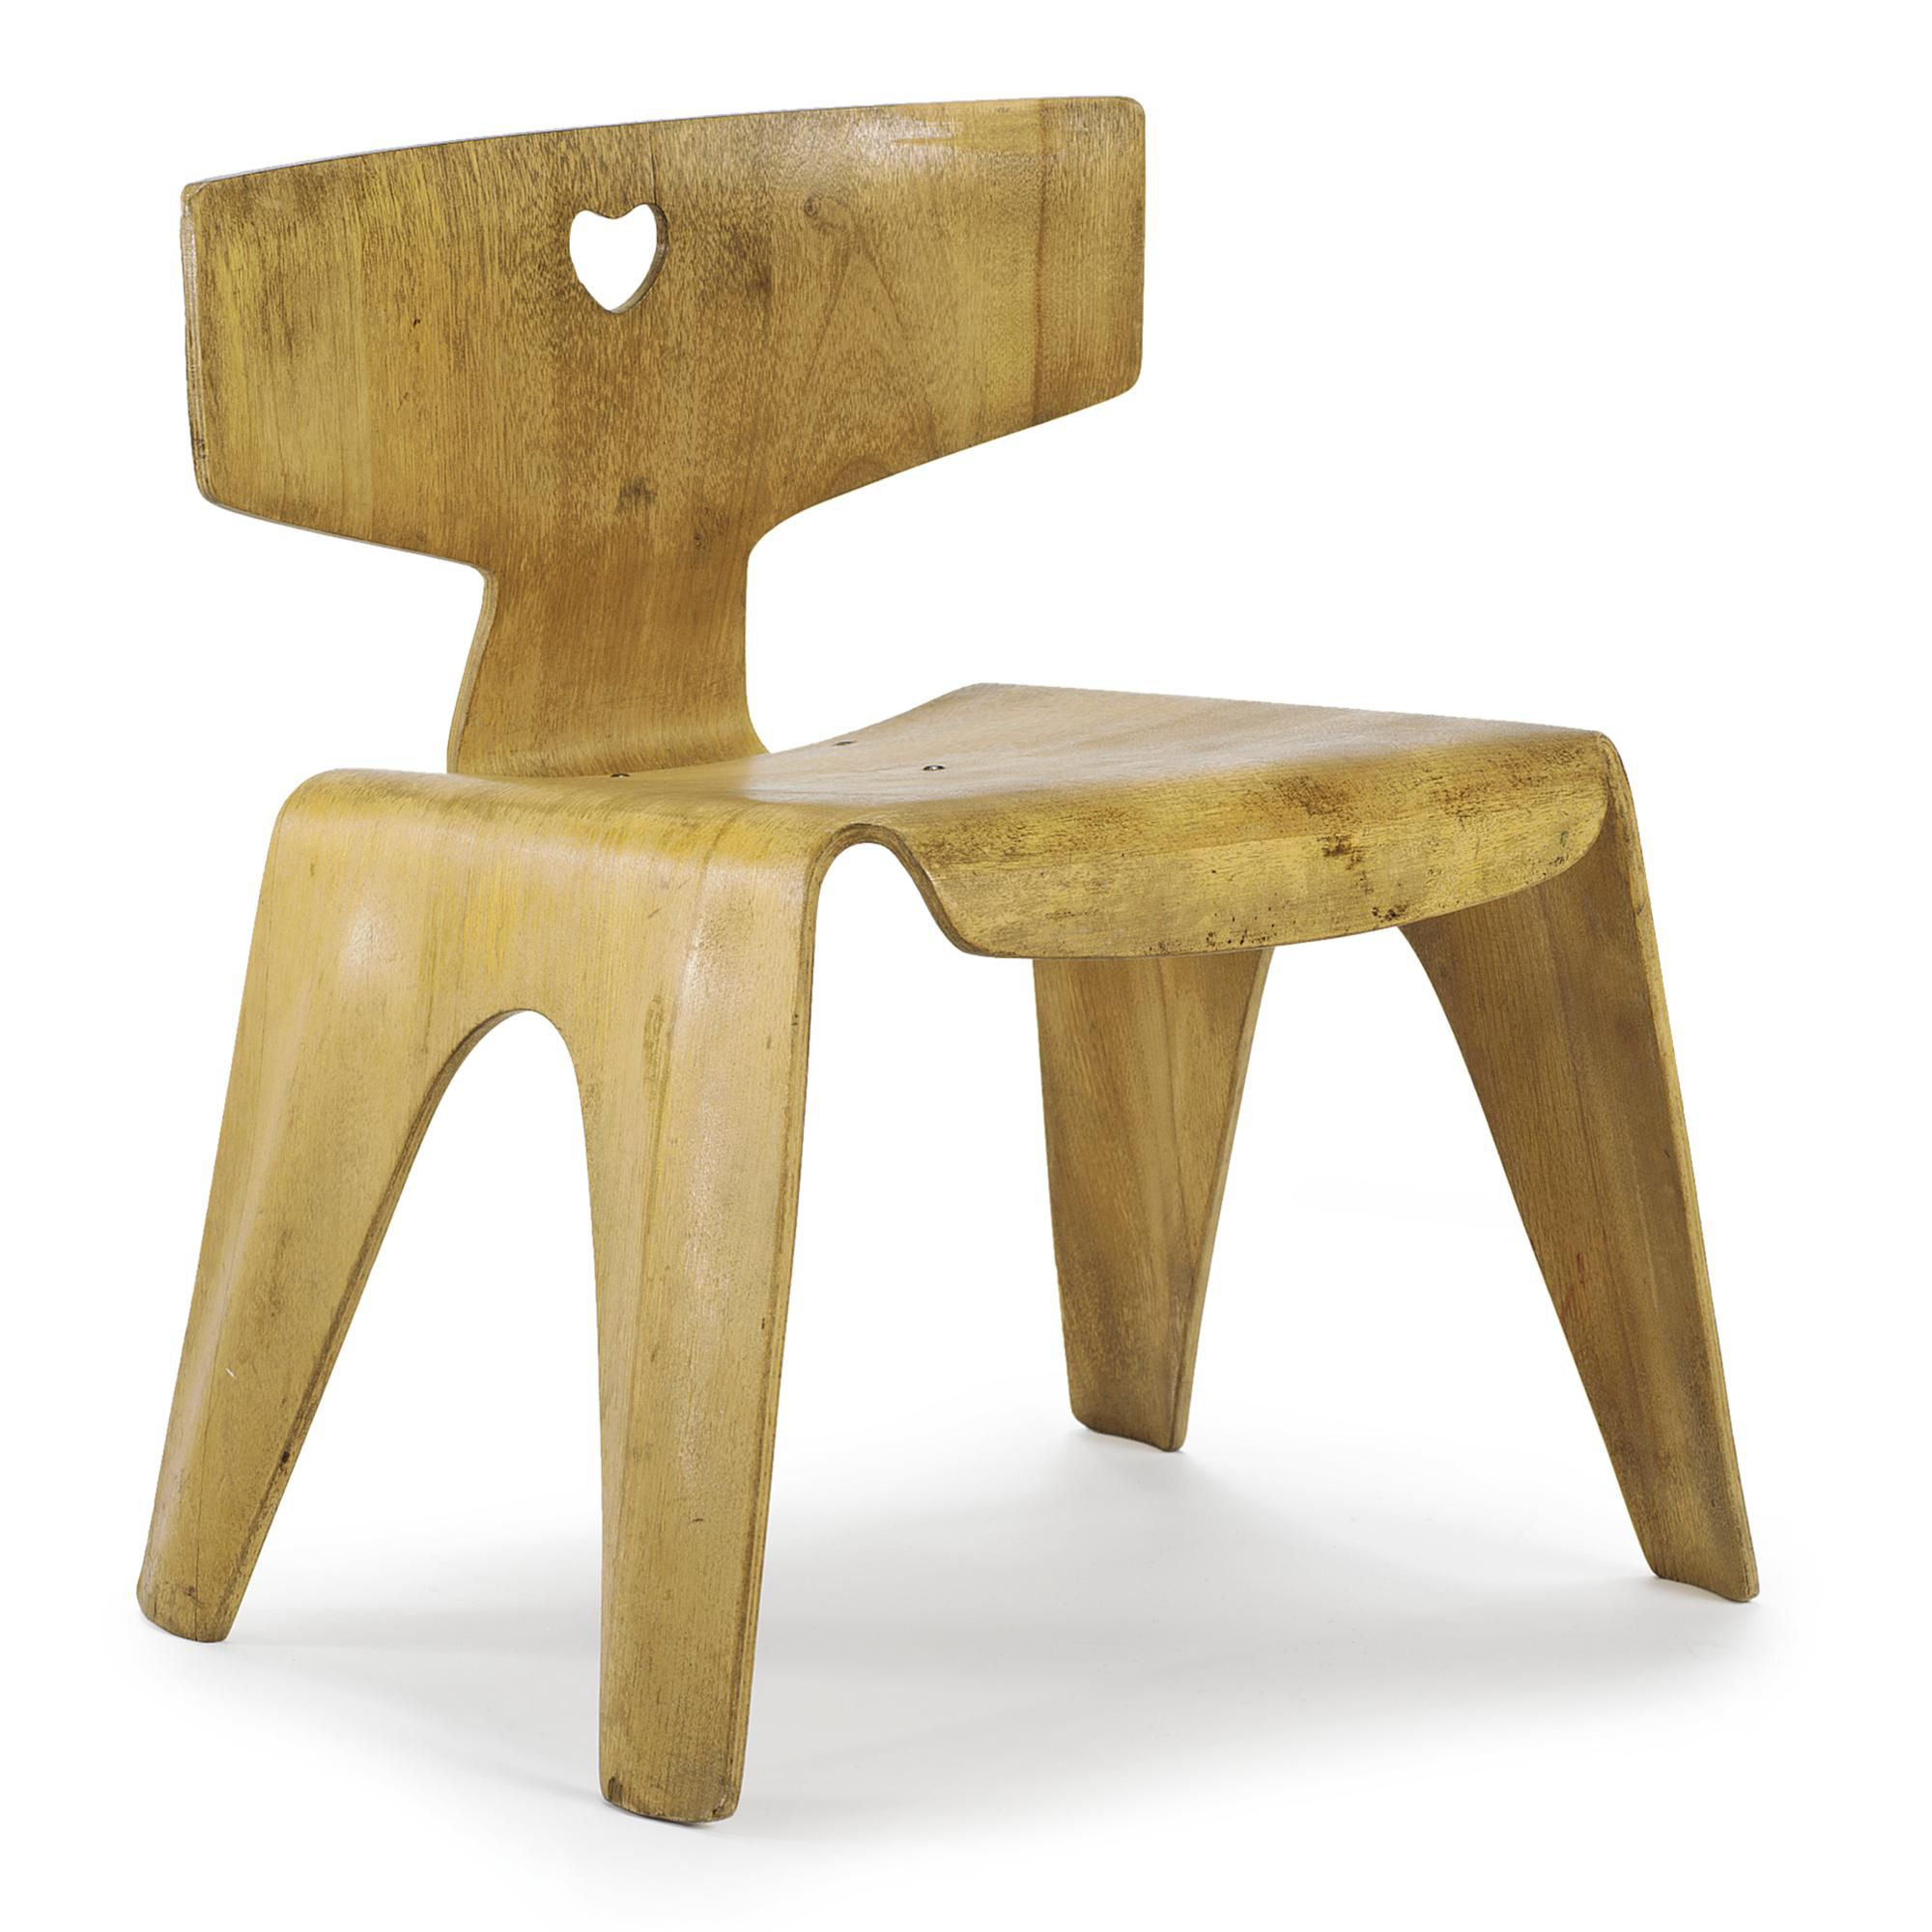 Charles and Ray Eames CHILD'S CHAIR birch plywood 14 3/4 in. (34.9 cm) high ca. 1945 manufactured by the Molded Plywood division of the Evans Products Company, Venice, CA